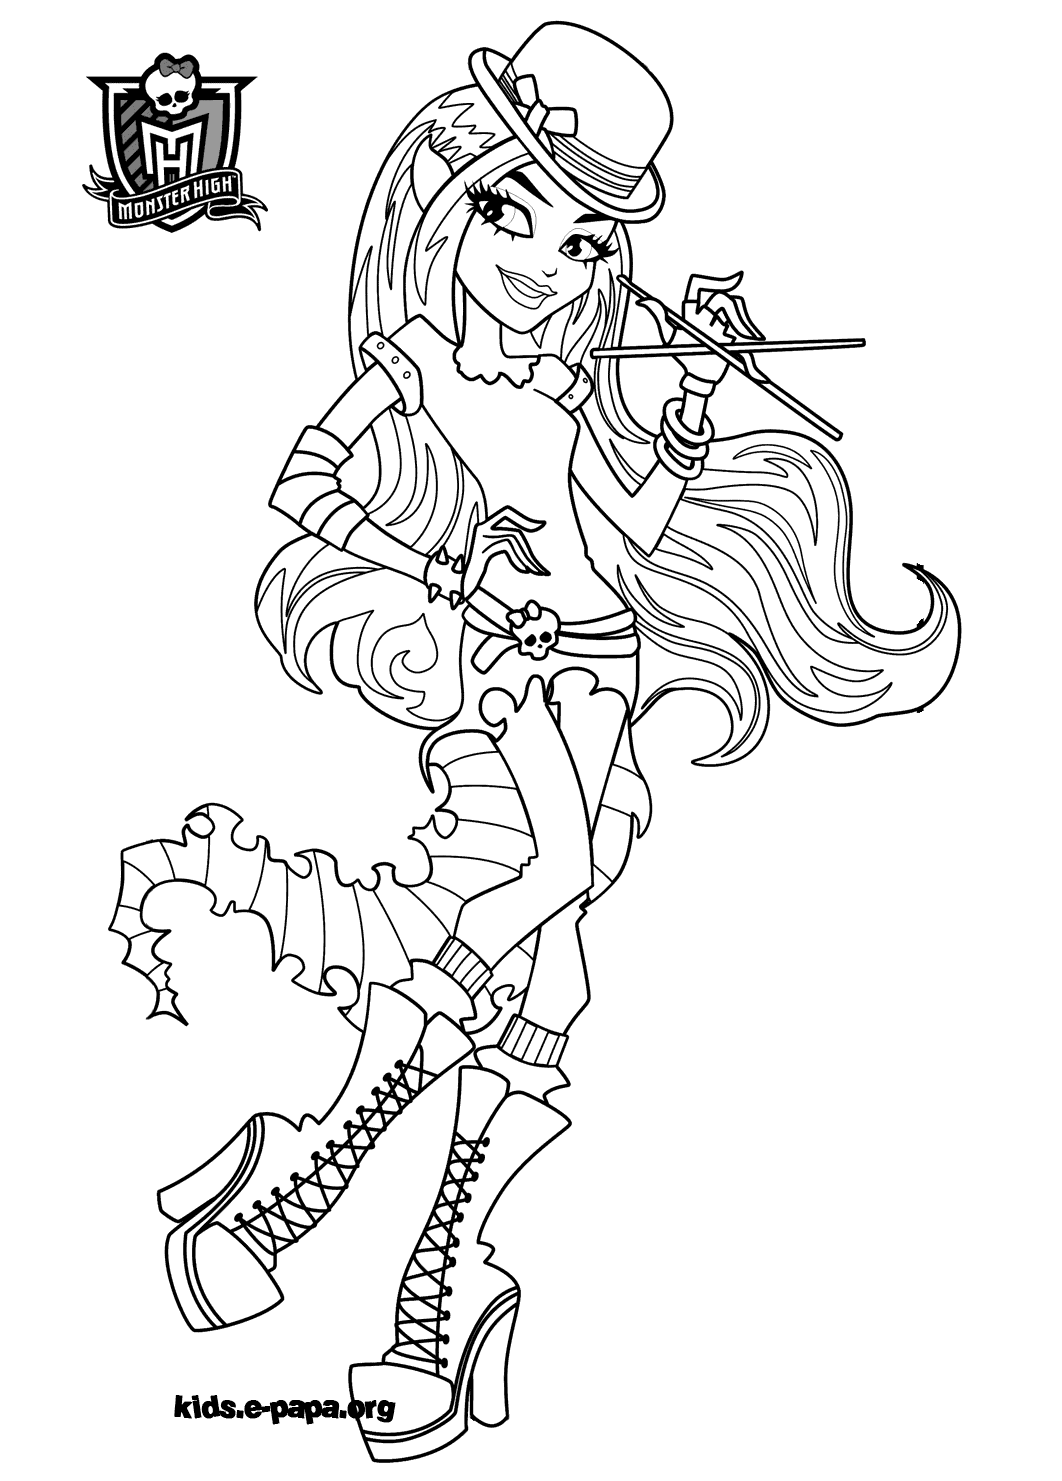 Ausmalbilder Monster High Spectra : Monster High Coloriage Baby This Printable Colouring Sheet Show A